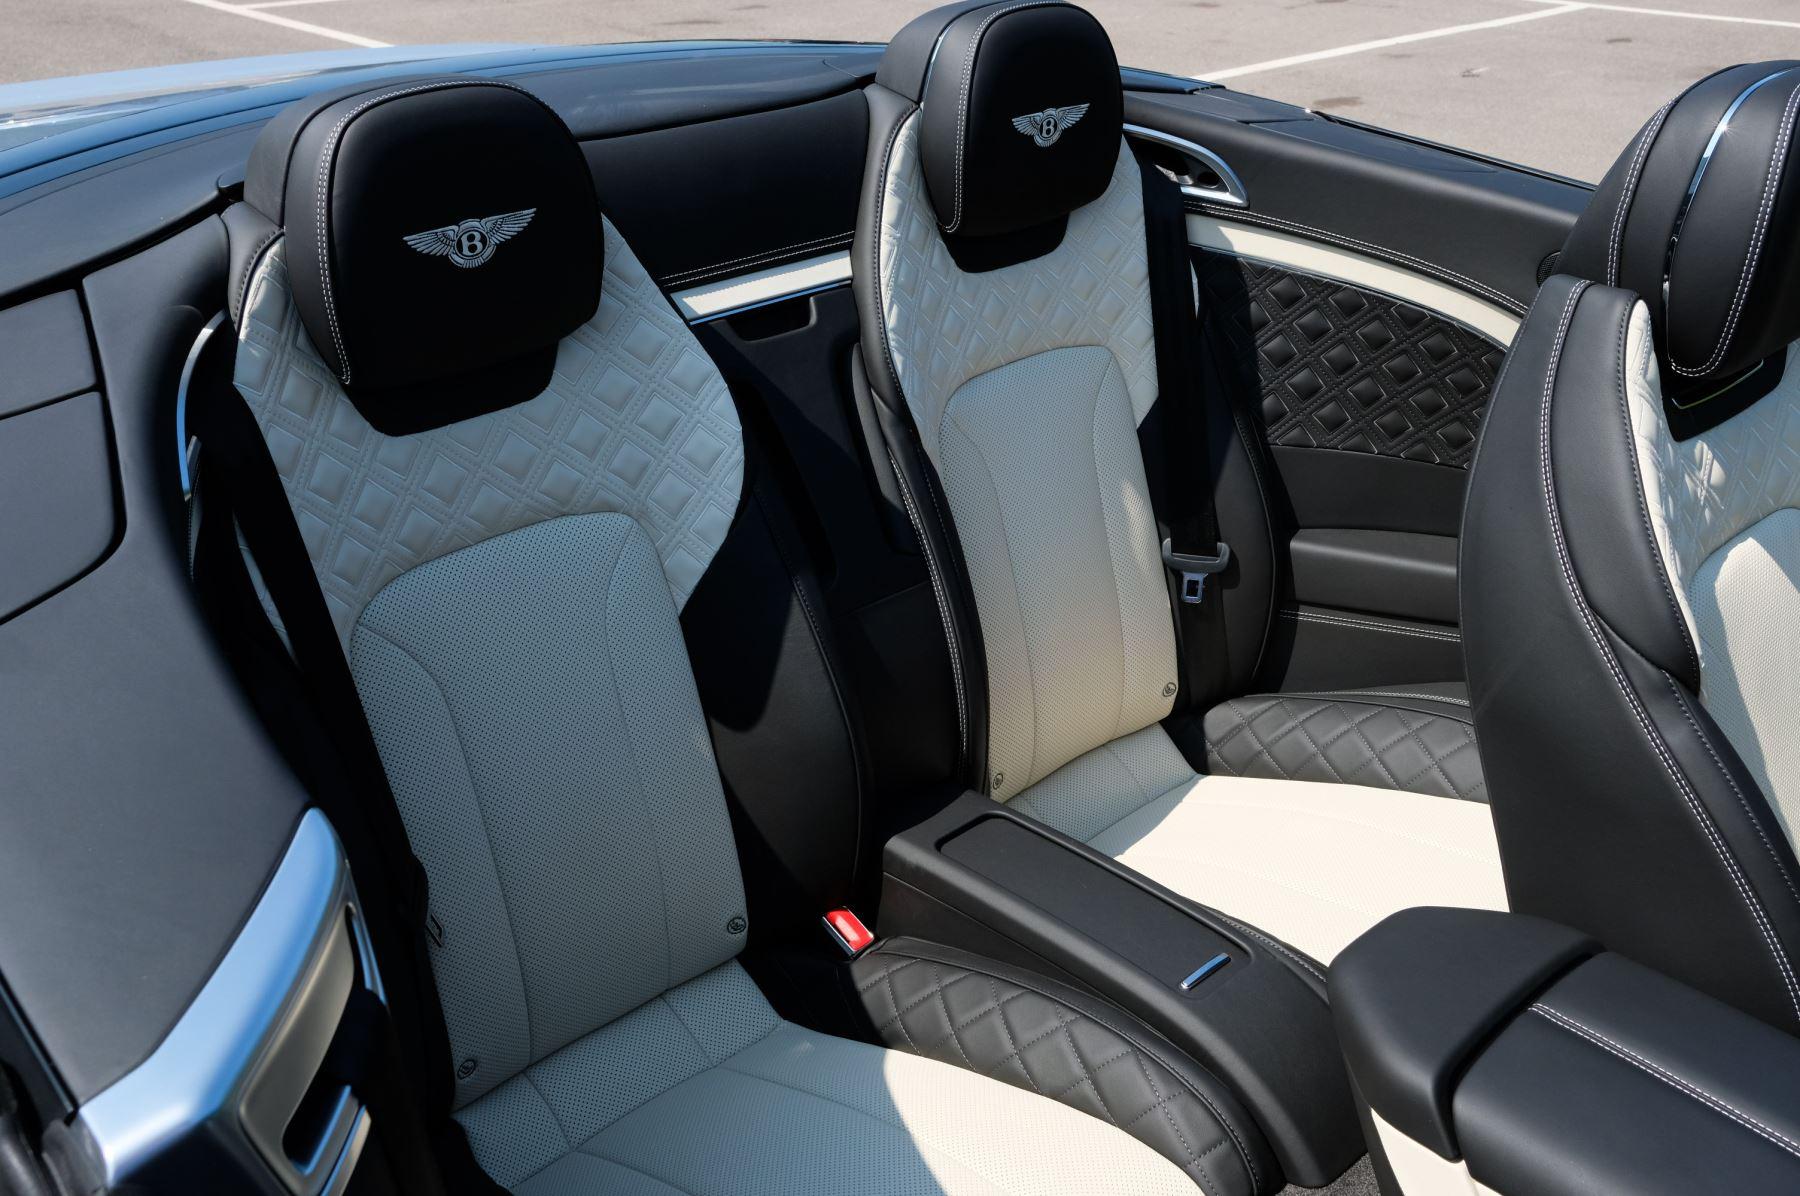 Bentley Continental GTC 4.0 V8 - Mulliner Driving Specification and Blackline Specification with 22 Inch Alloys image 13